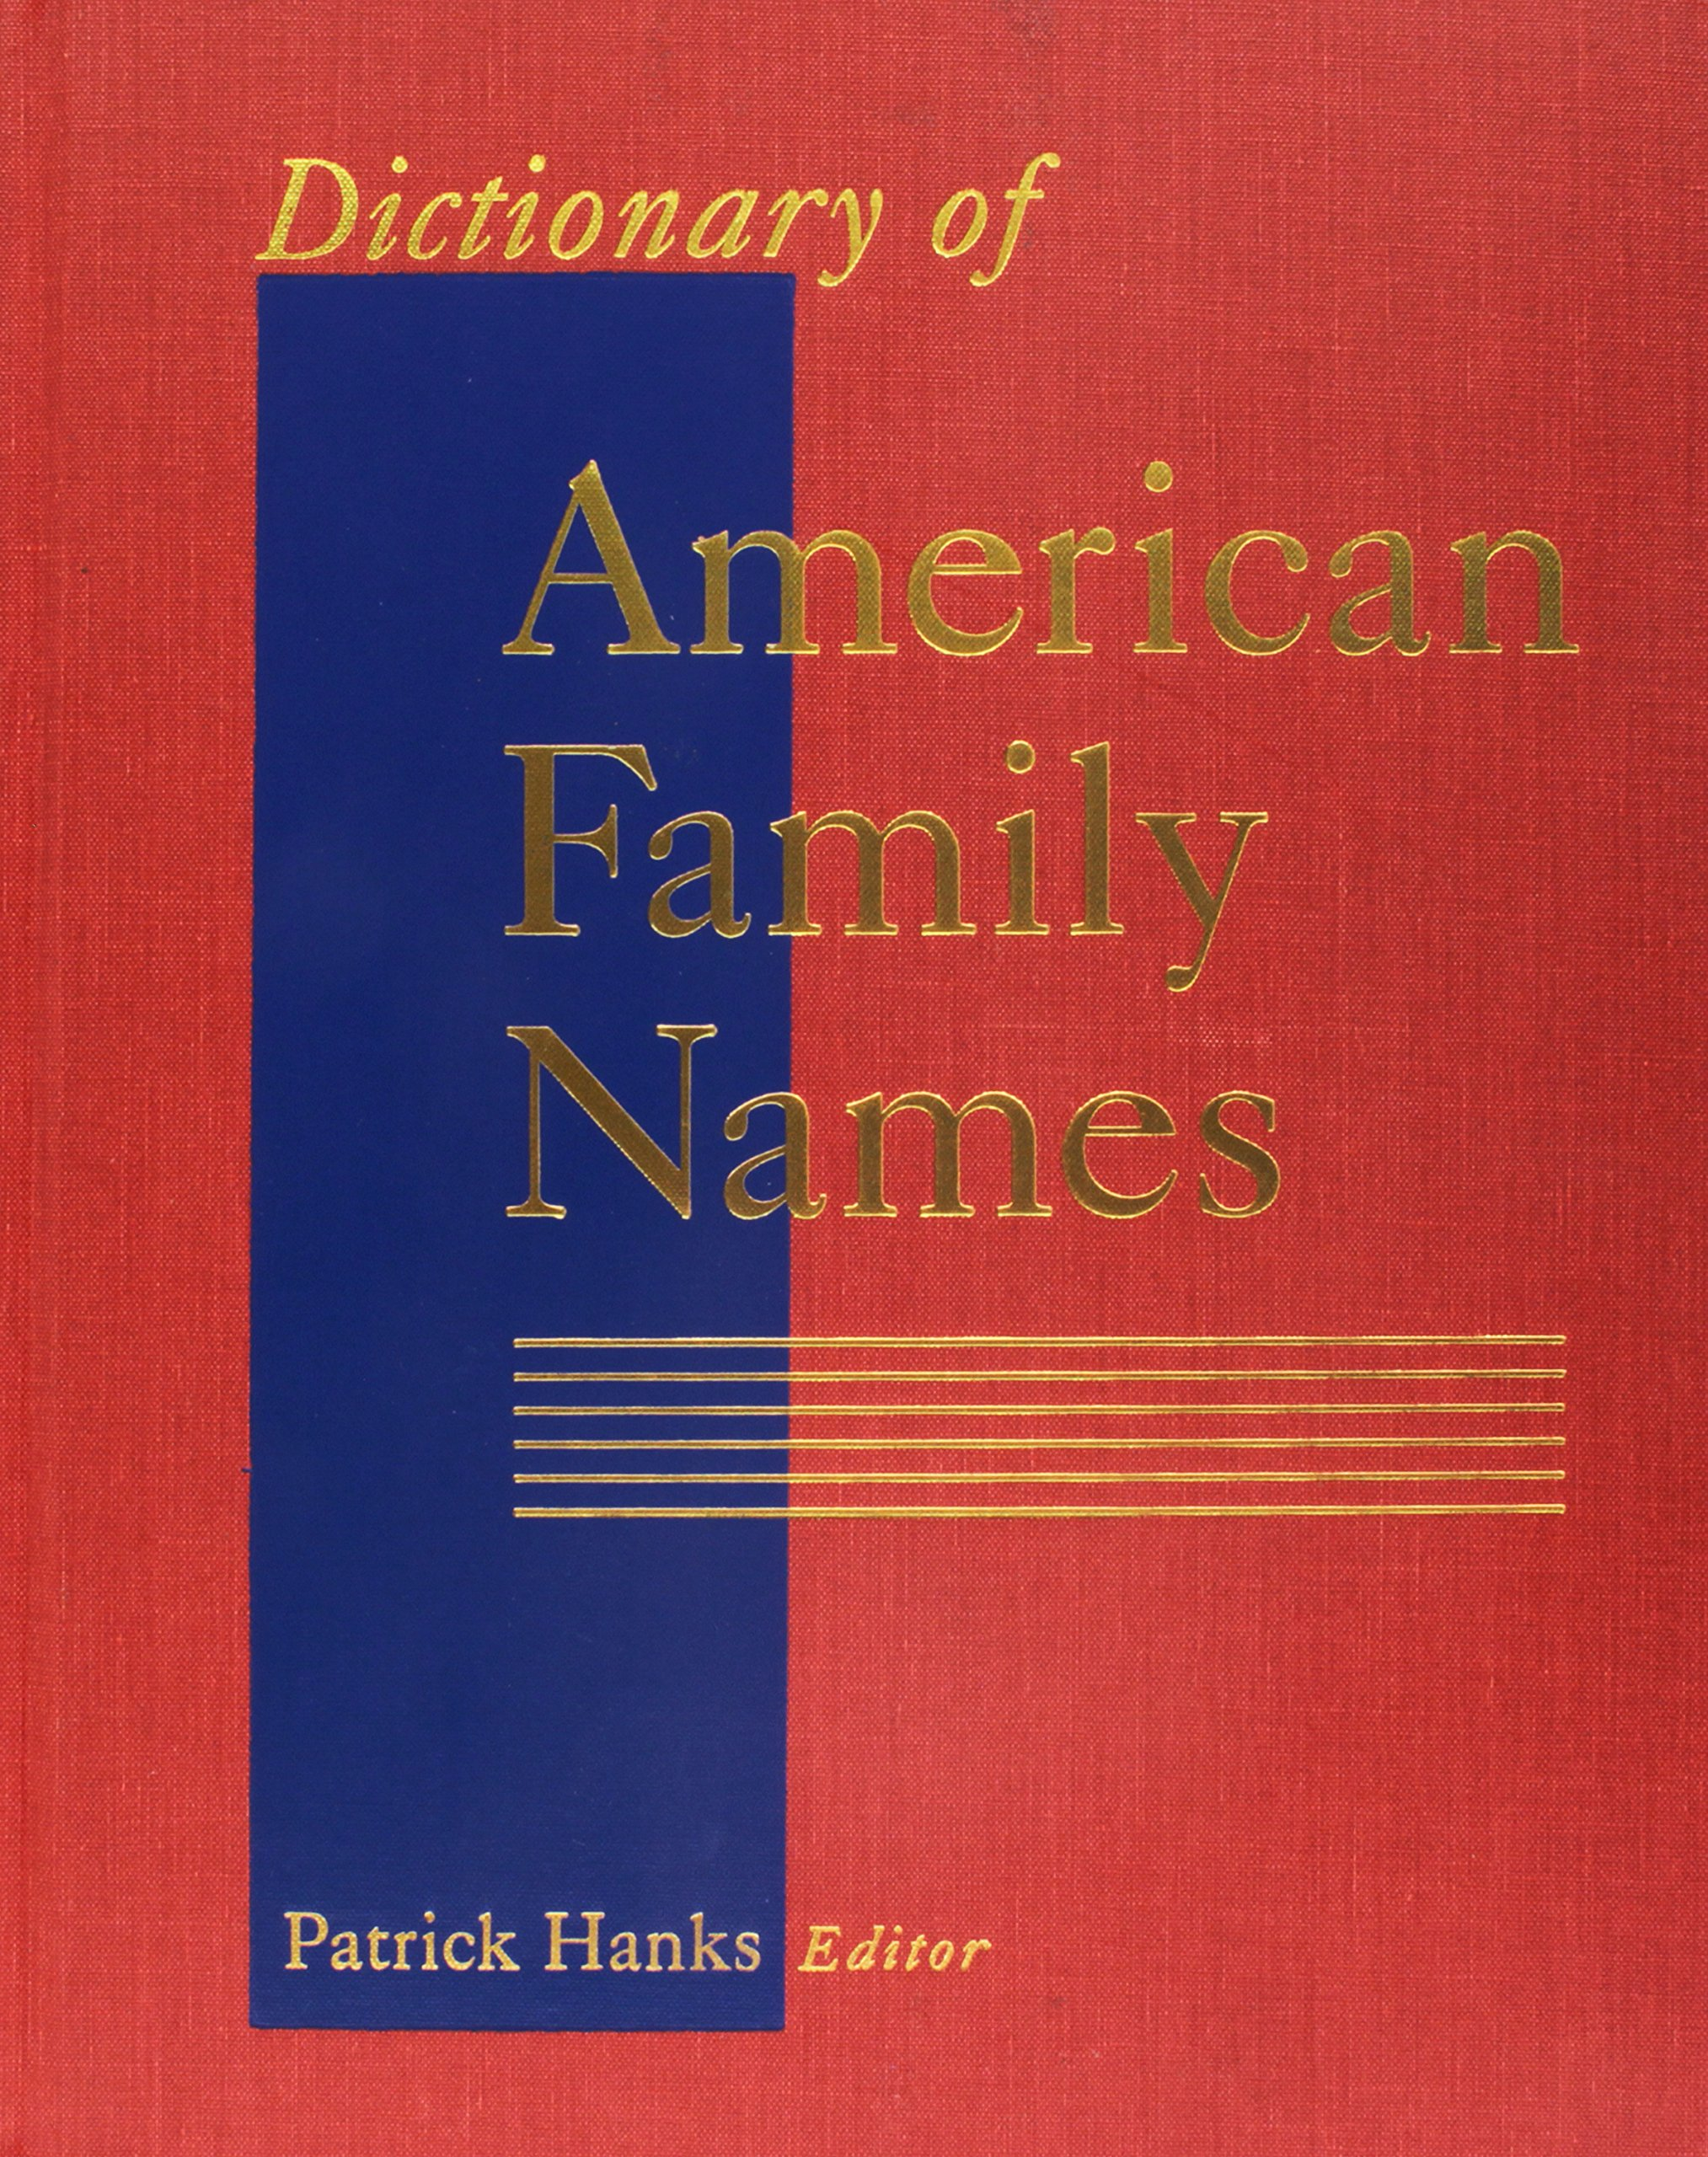 Dictionary of American Family Names, Vol. 2: G-N: Patrick Hanks:  9780195165586: Amazon.com: Books